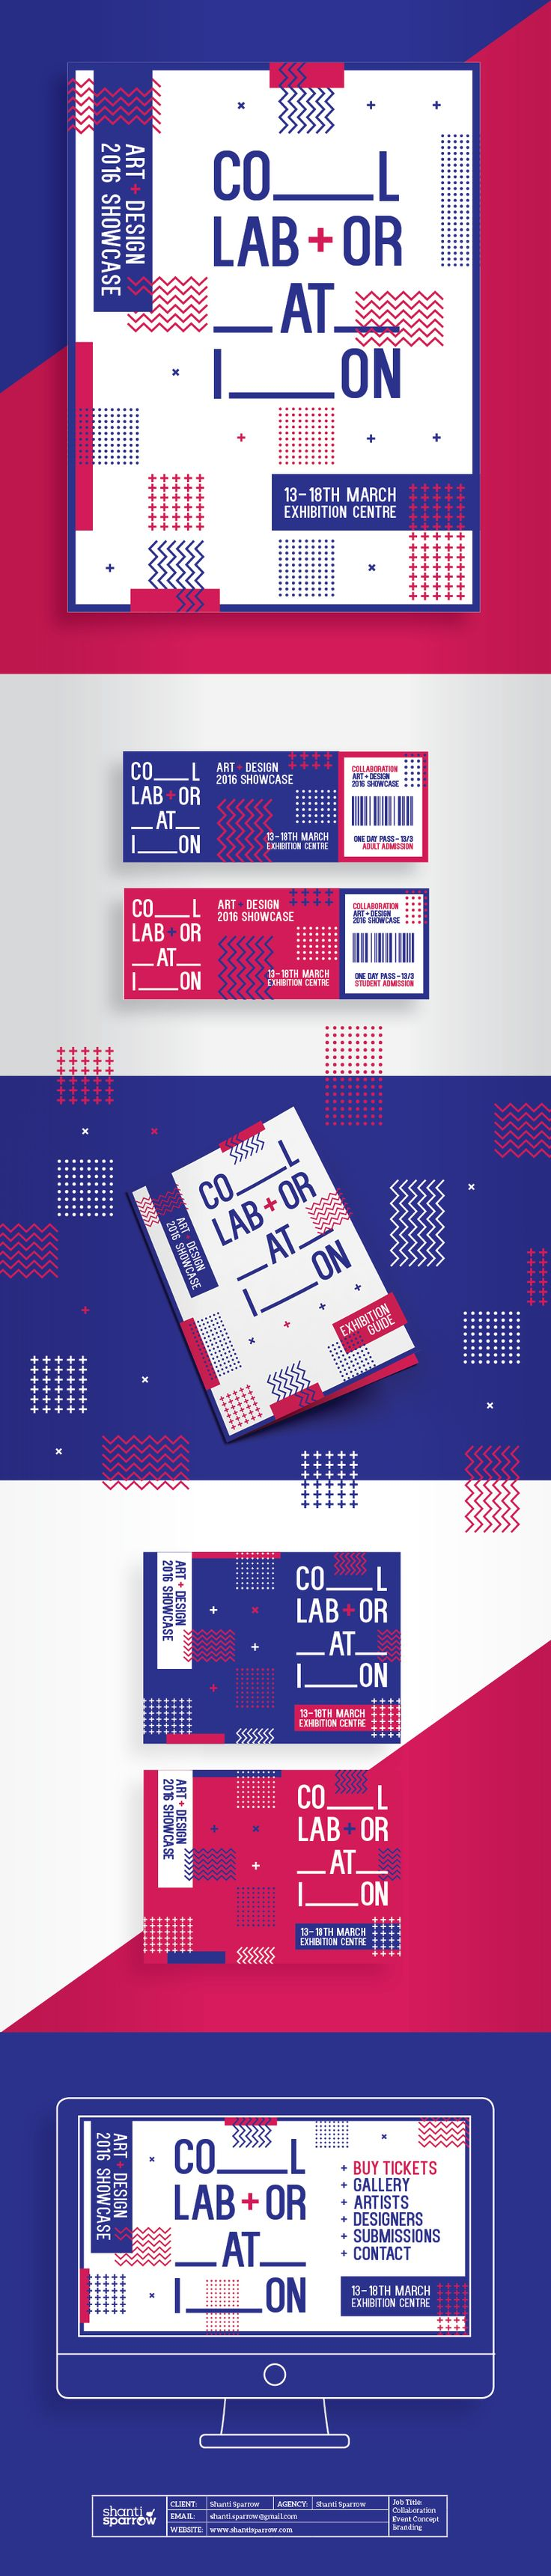 Design by Shanti Sparrow www.shantisparrow.com Project Name: Collaboration Branding #Design #graphicdesign #illustration #layout #typography #branding #graphics #identity #graphic #designinspiration #inspiration #posterdesign #grid #graphicelements #brochure #poster #brochuredesign #website #tickets #swiss